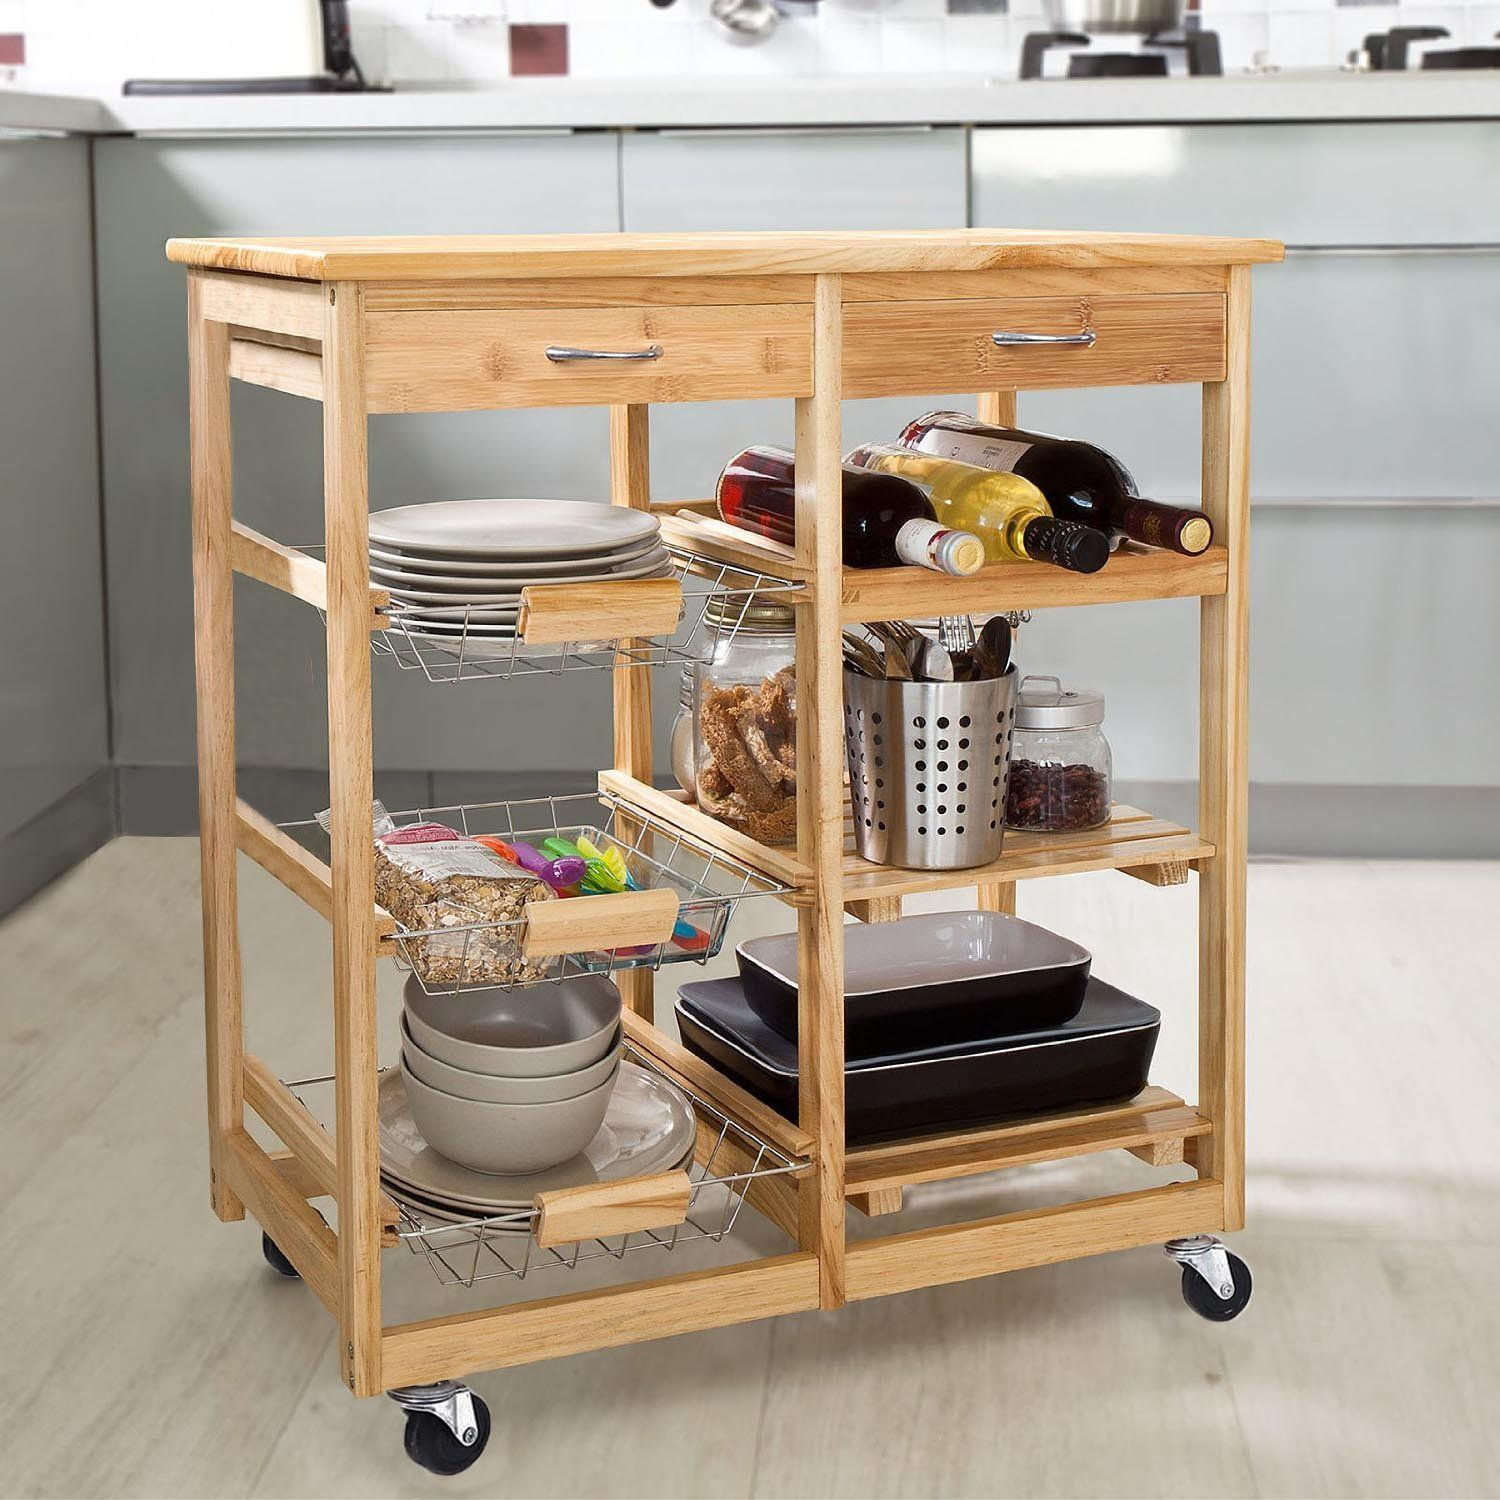 8 Essentials for Your Perfect Bar Cart